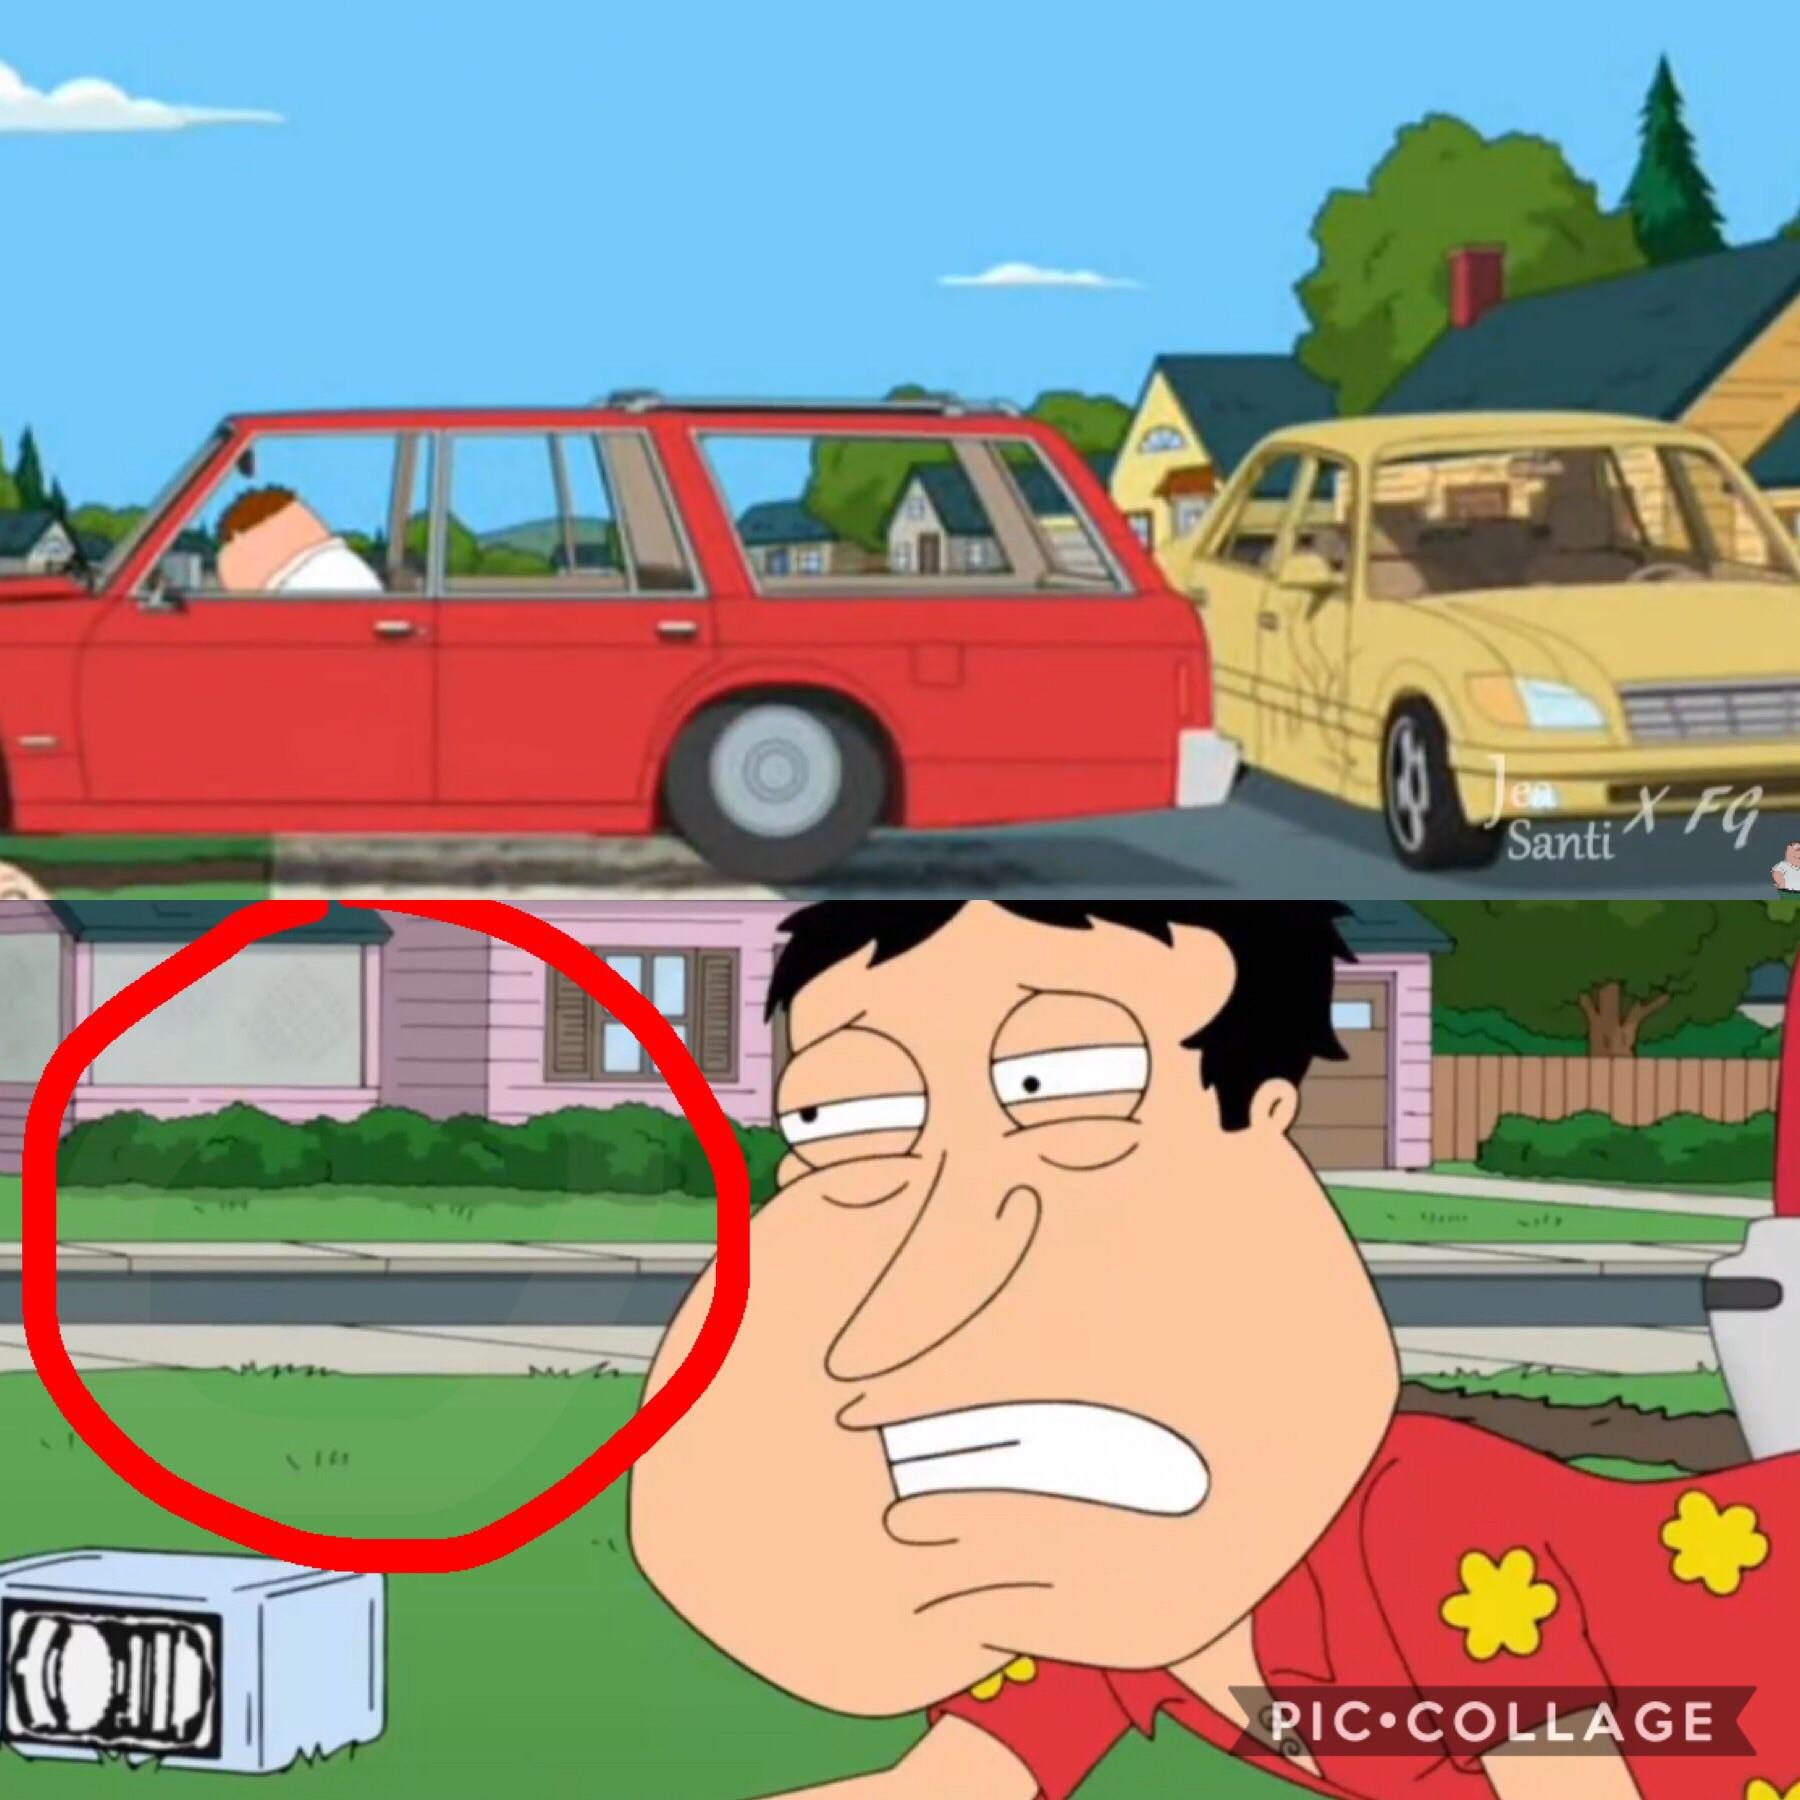 just noticed this car